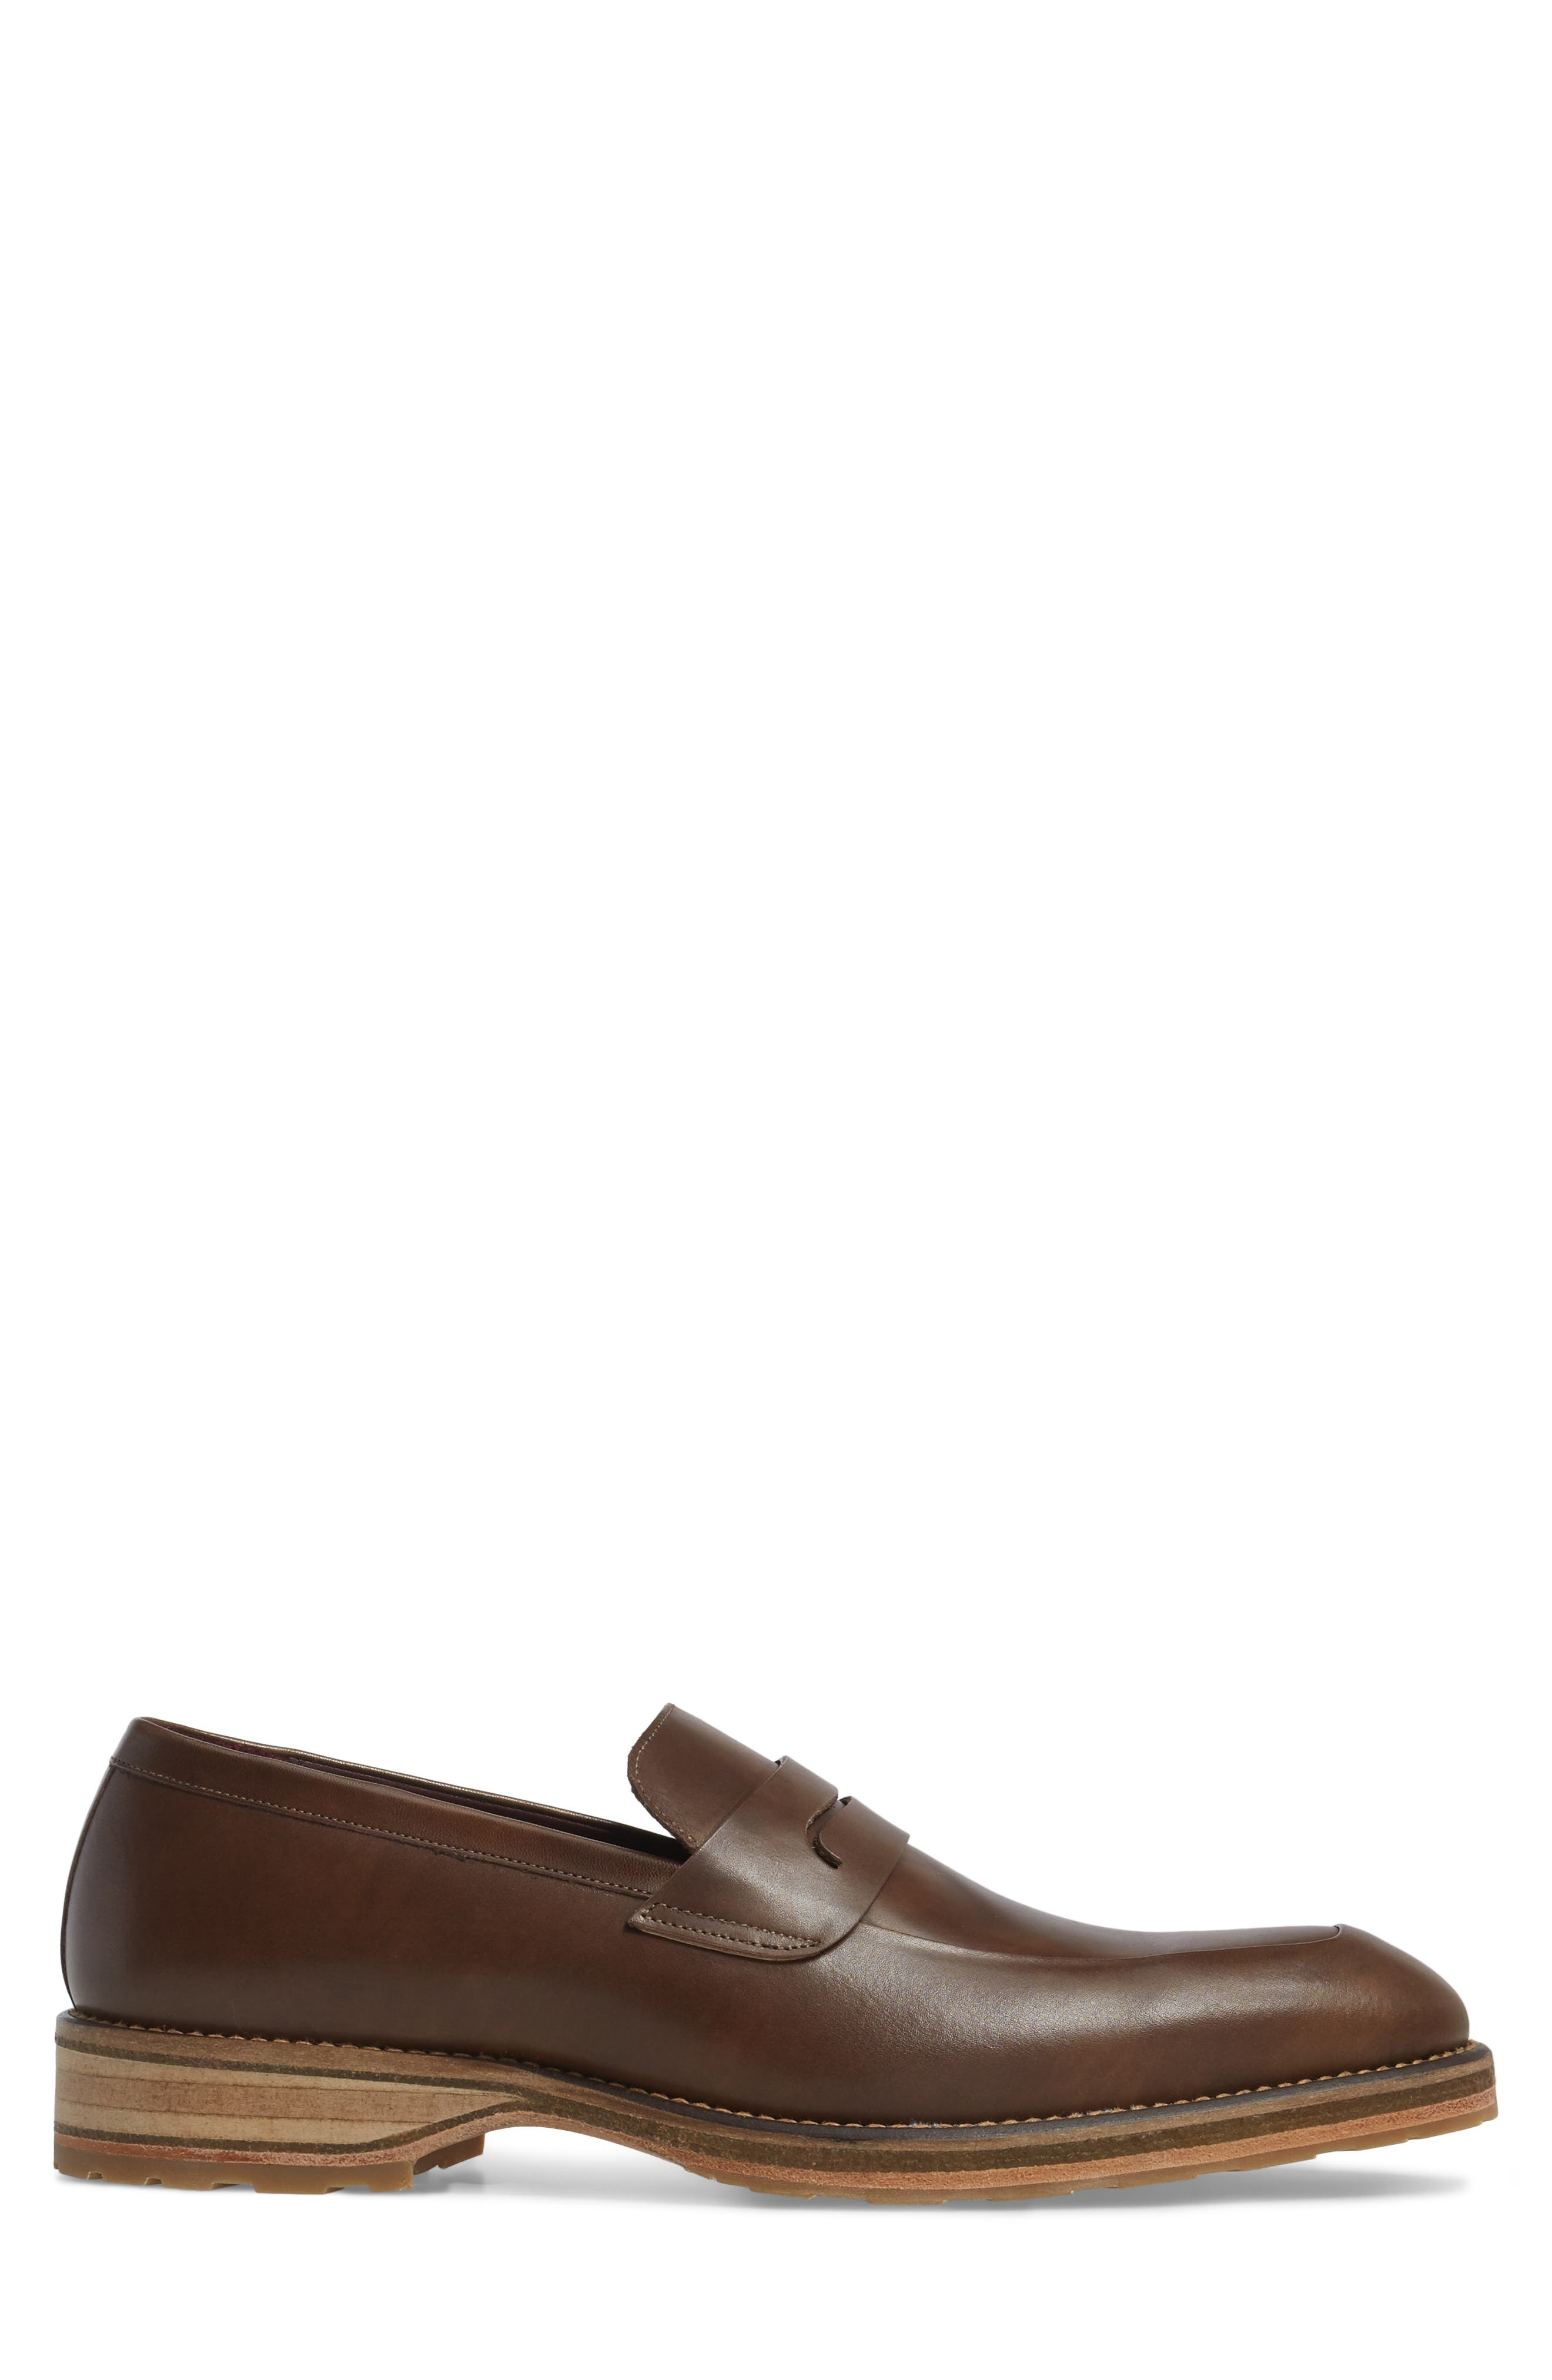 Cantonia Penny Loafer,                             Alternate thumbnail 3, color,